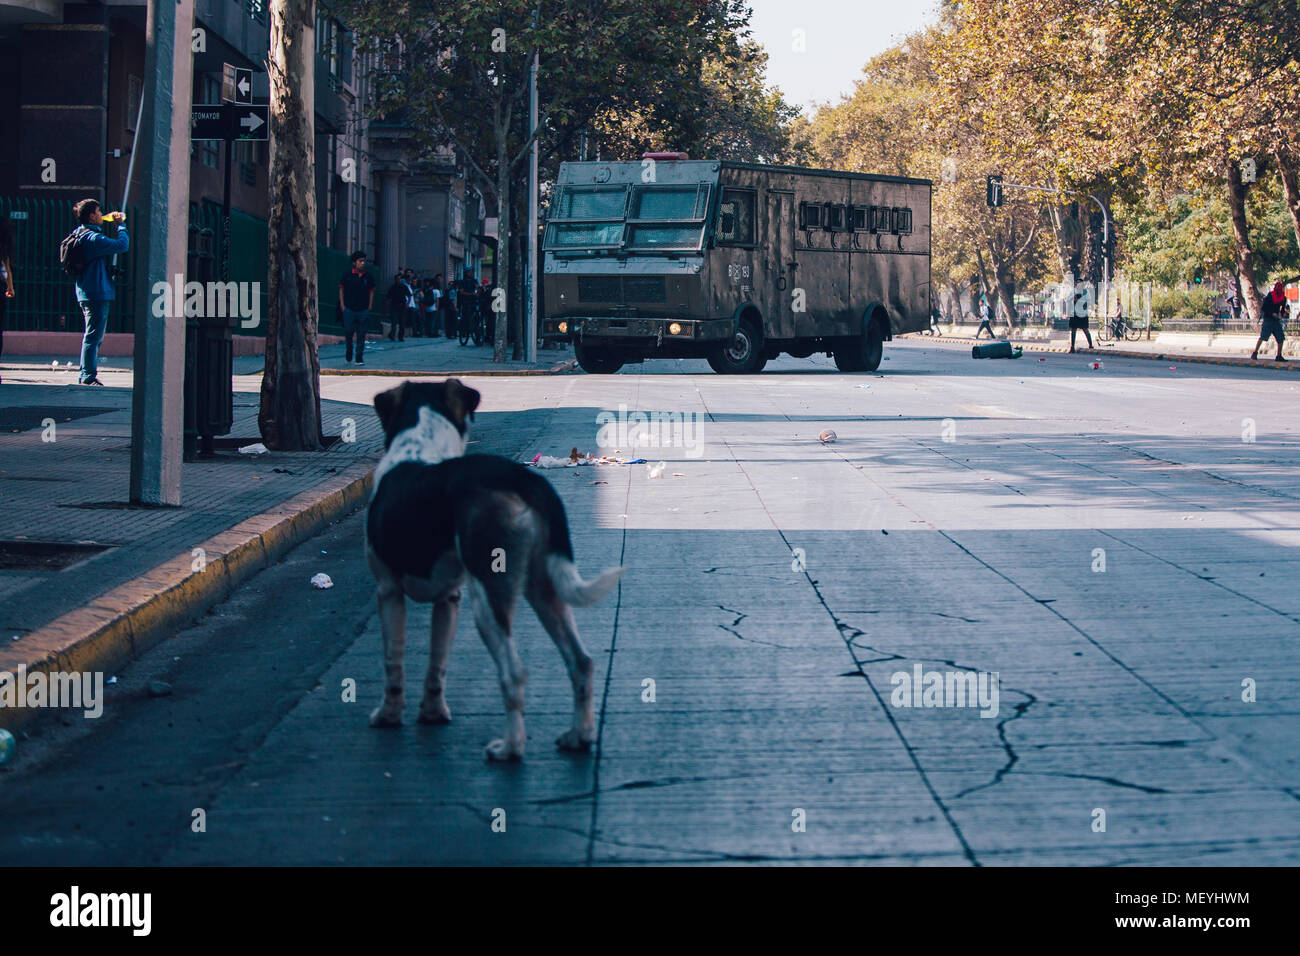 Santiago, Chile - April 19, 2018: dog observes police bus during a demonstration demanding an end to the Profit in the Education. - Stock Image